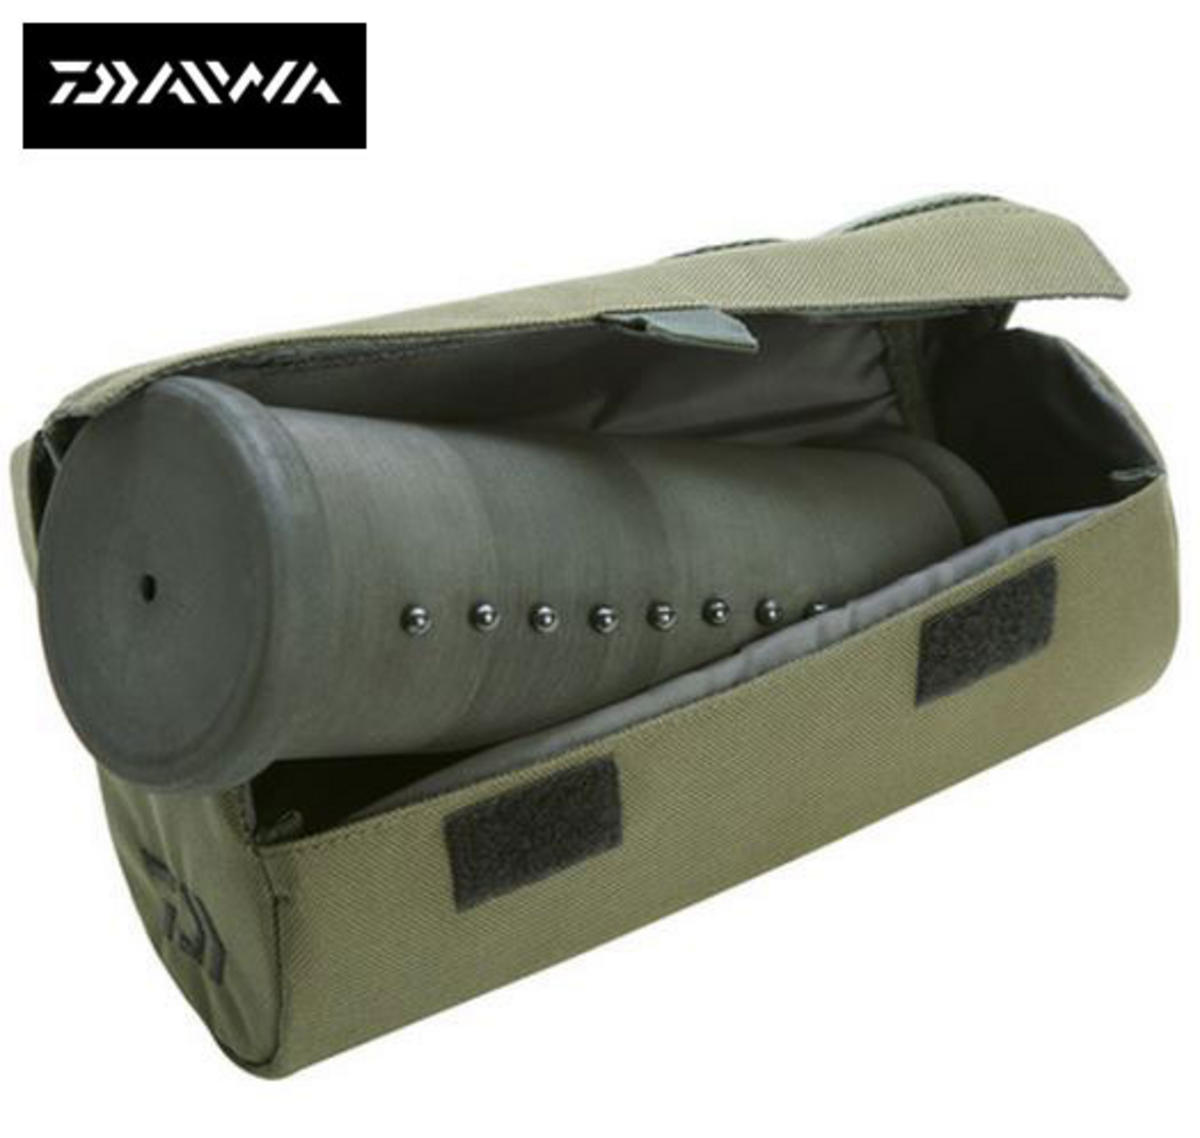 CLEARANCE DAIWA INFINITY® RIG ROLL Model No. DIRR1